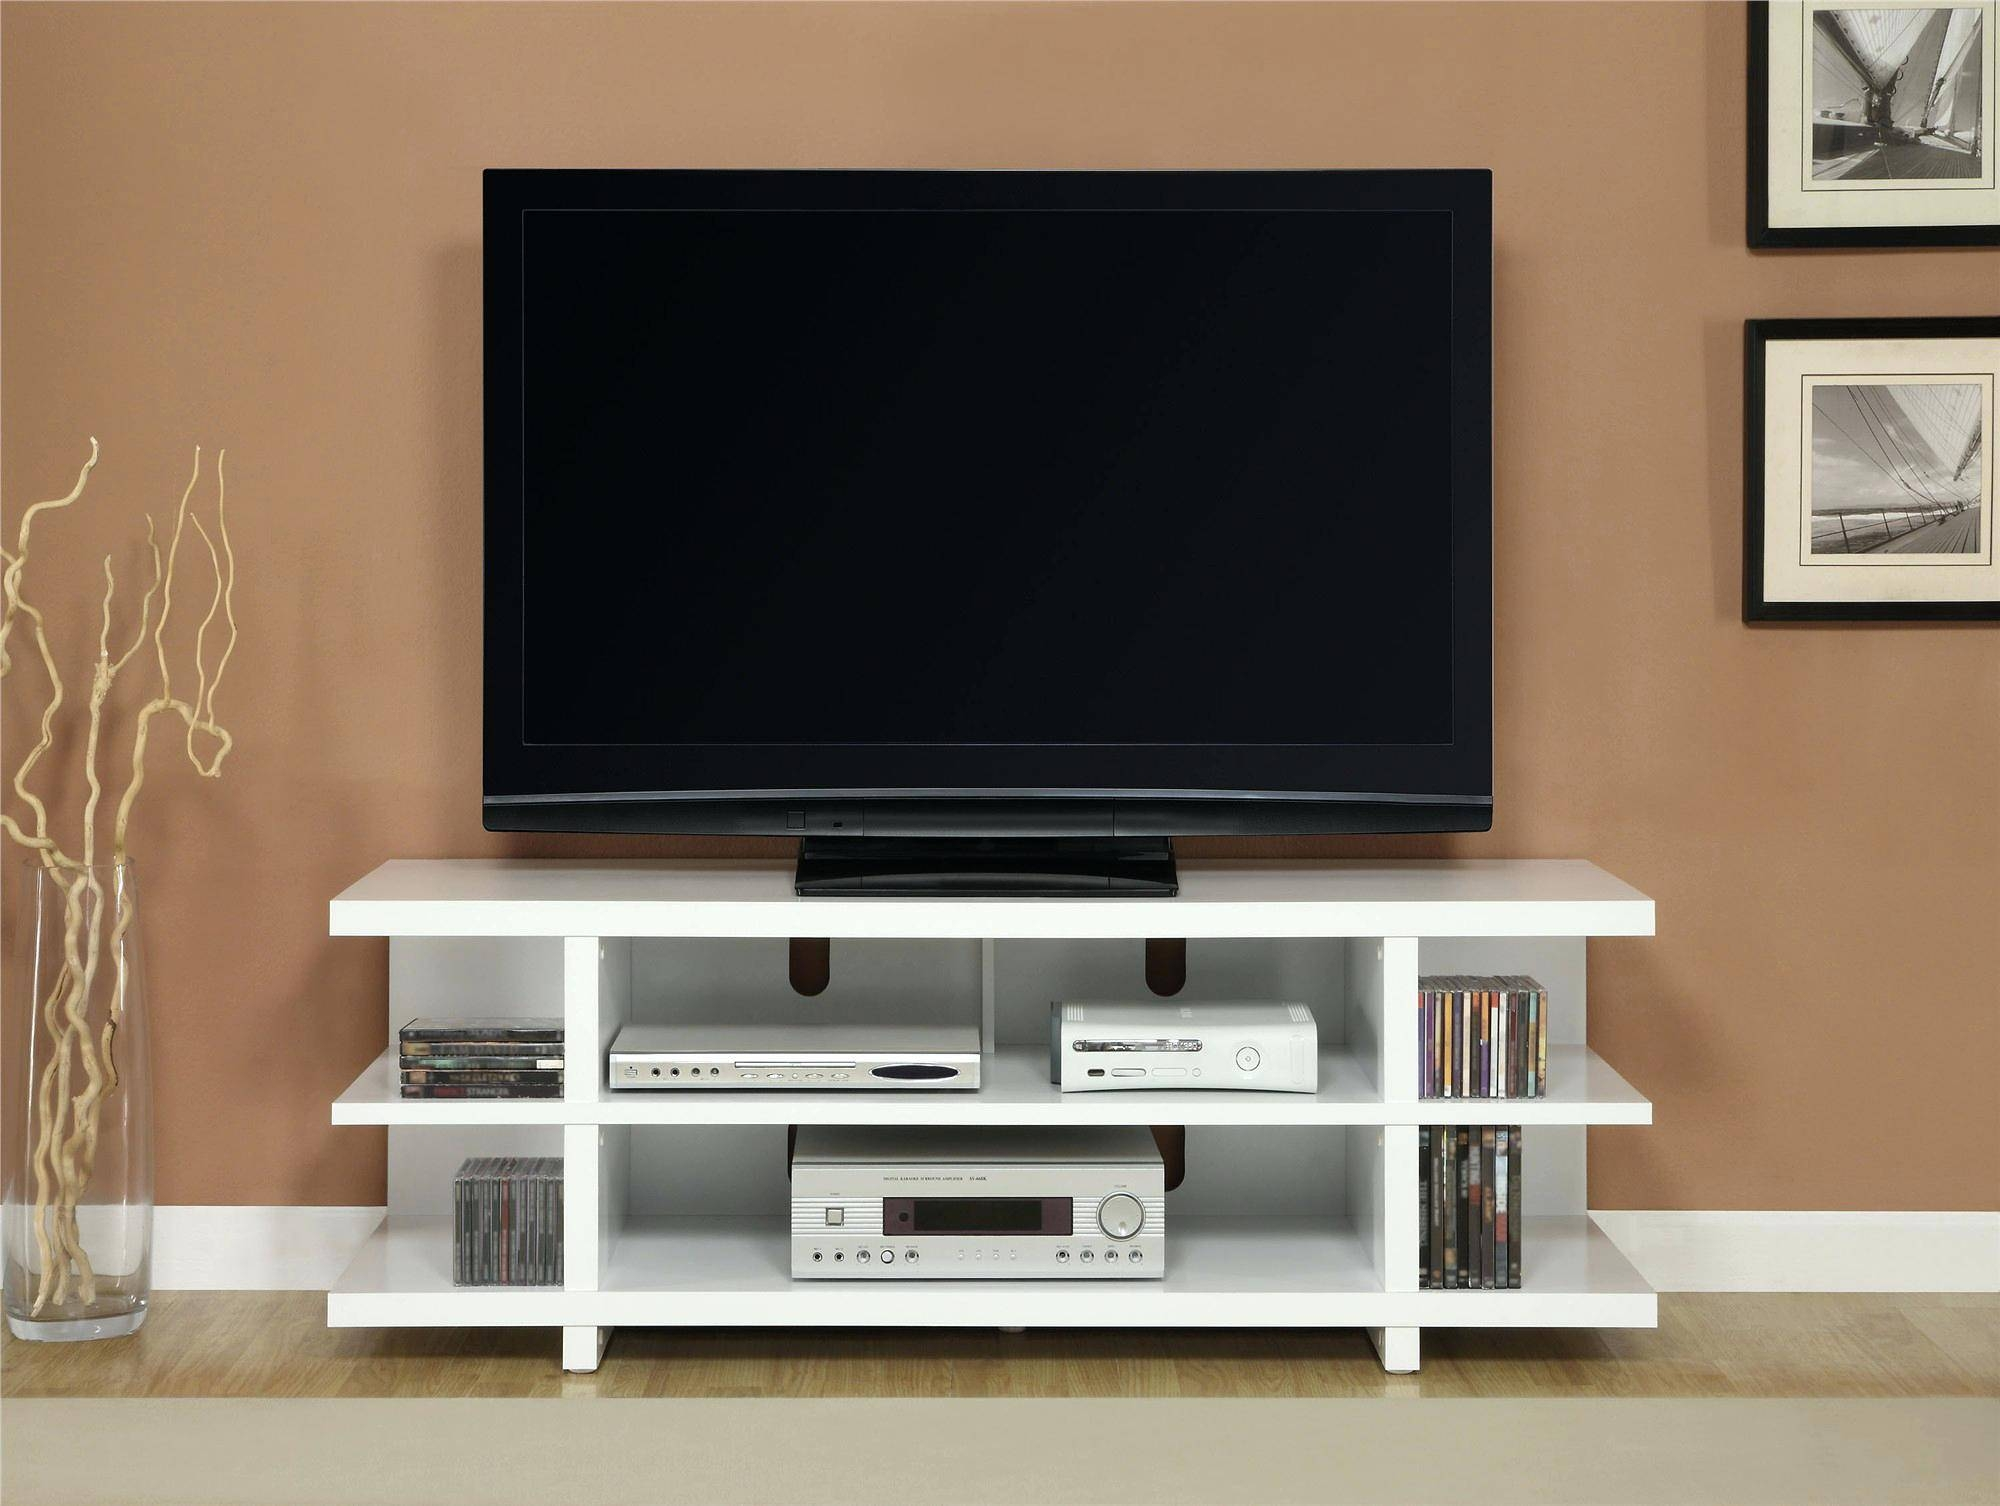 Tv Stand : Thresholdtm Open Shelf Tv Stand Espresso 79 Superb with Modern Tv Stands For Flat Screens (Image 12 of 15)